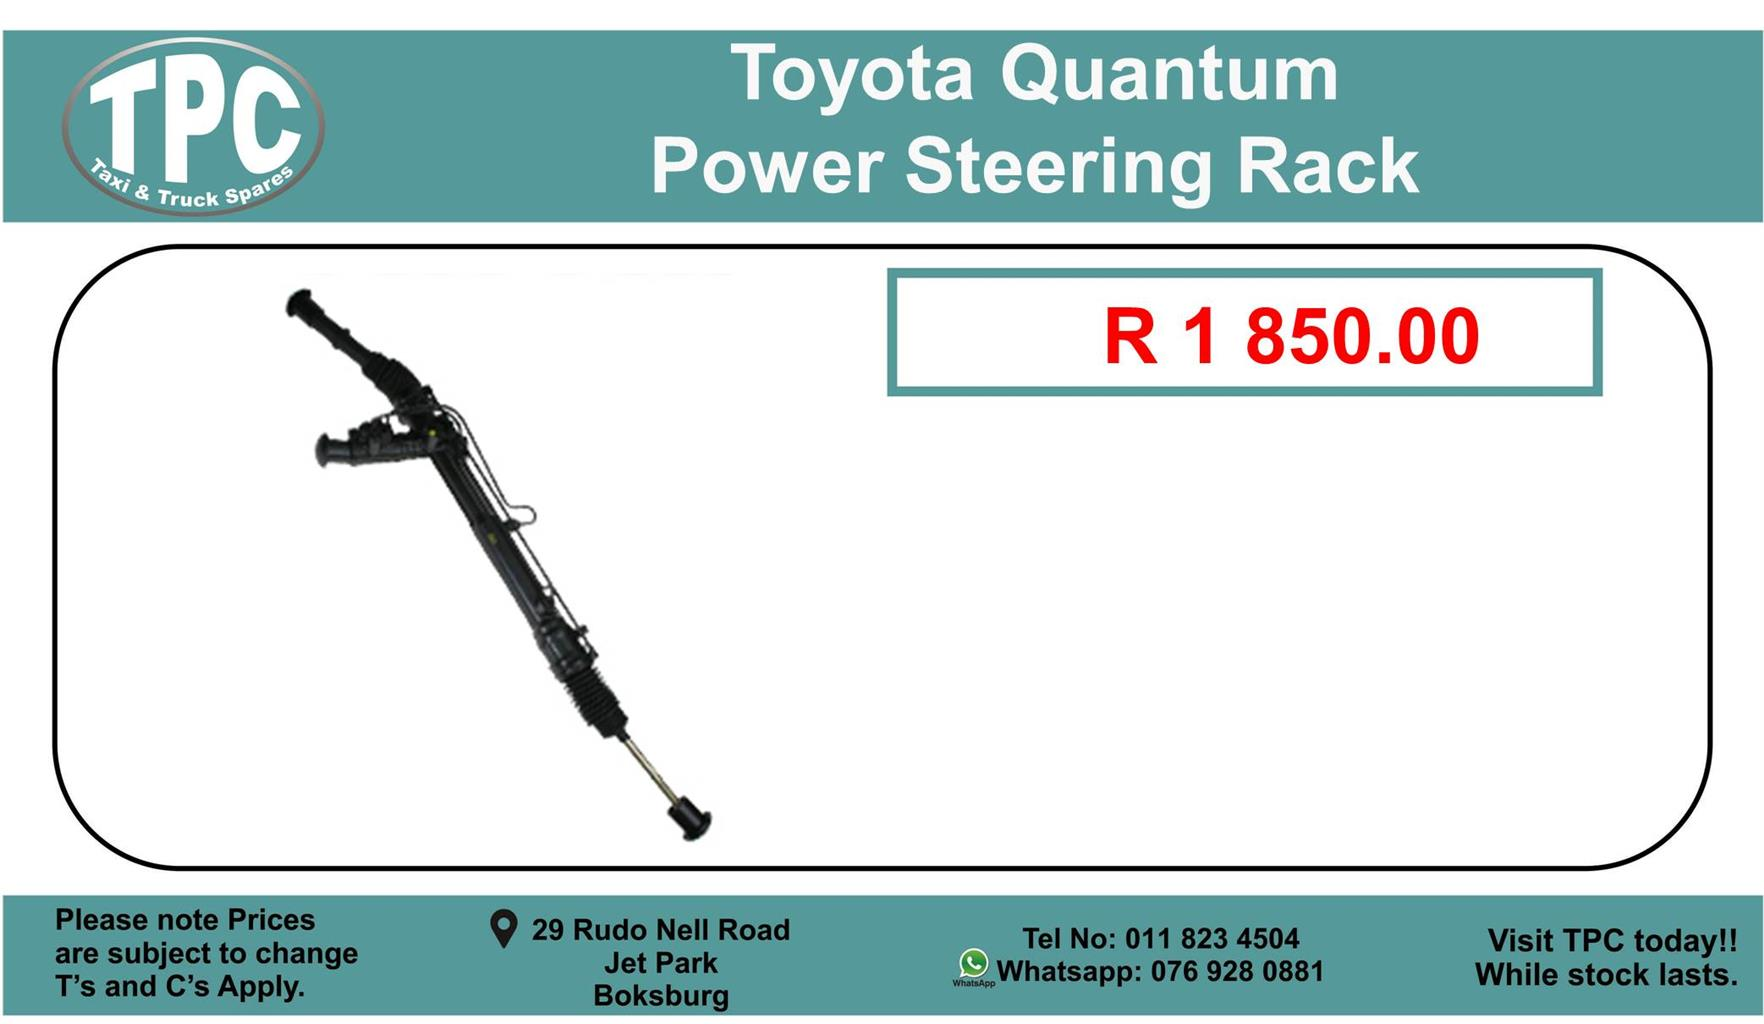 Toyota Quantum Power Steering Rack For sale.